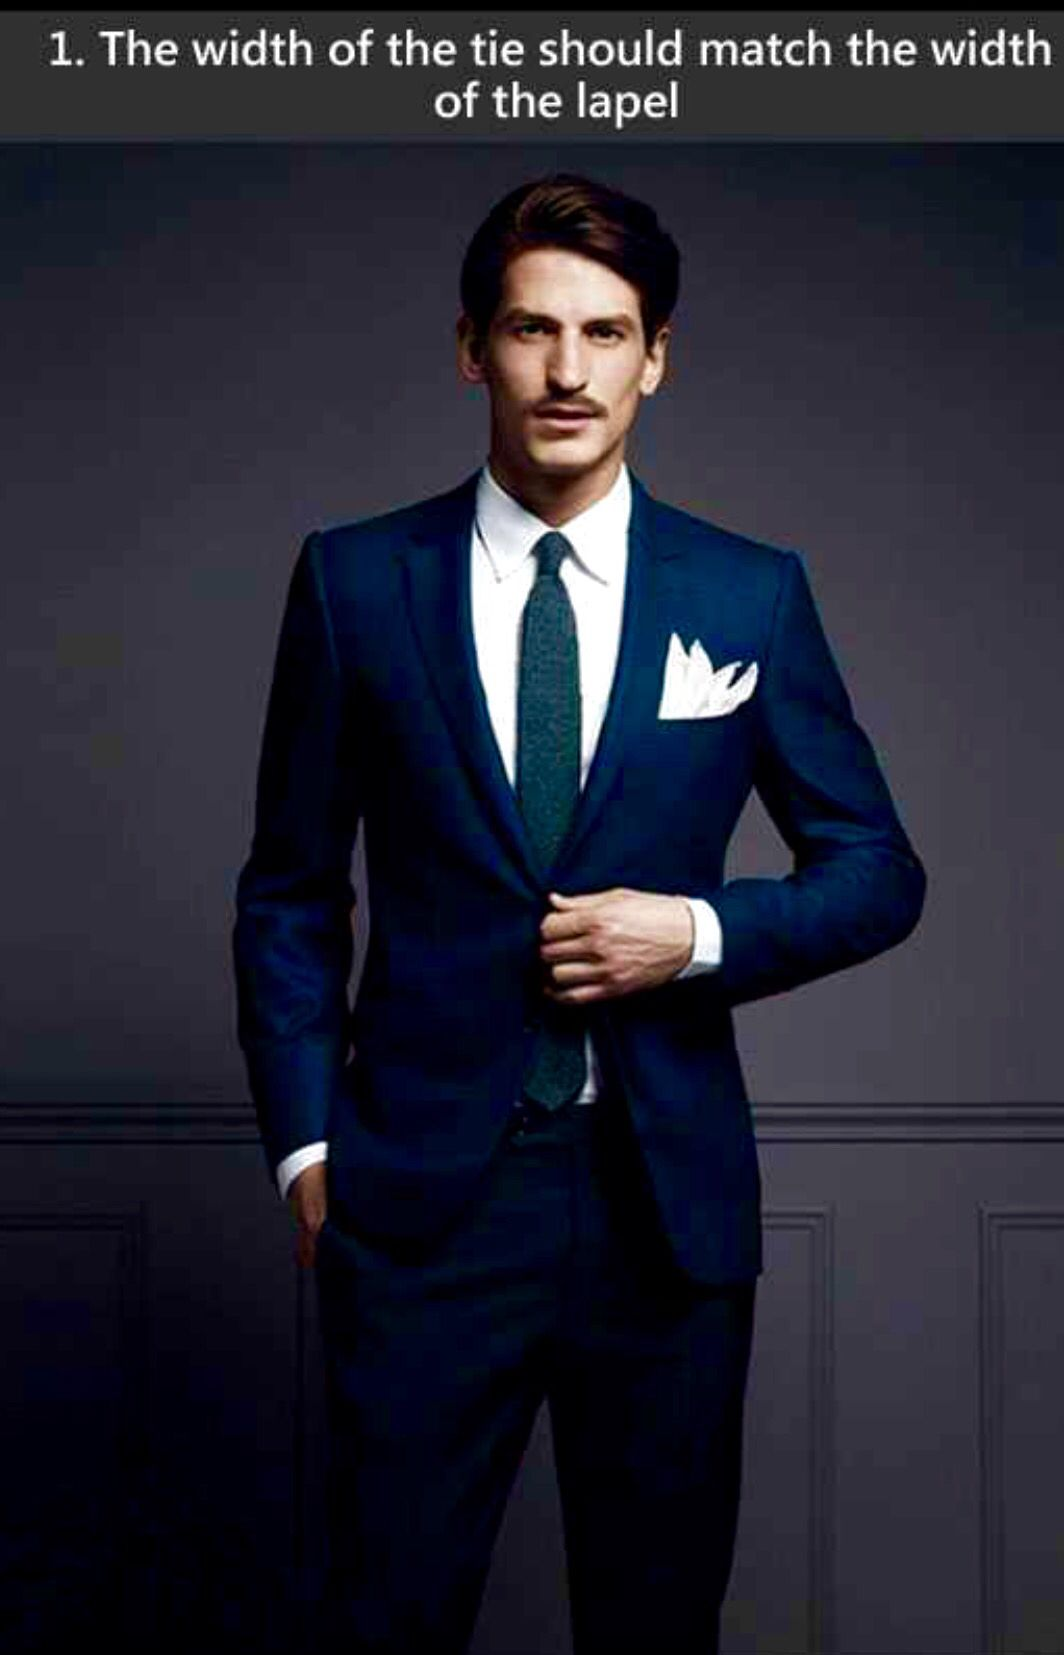 Flannel shirt under suit  The width of the tie should match the width of the lapel  Ties